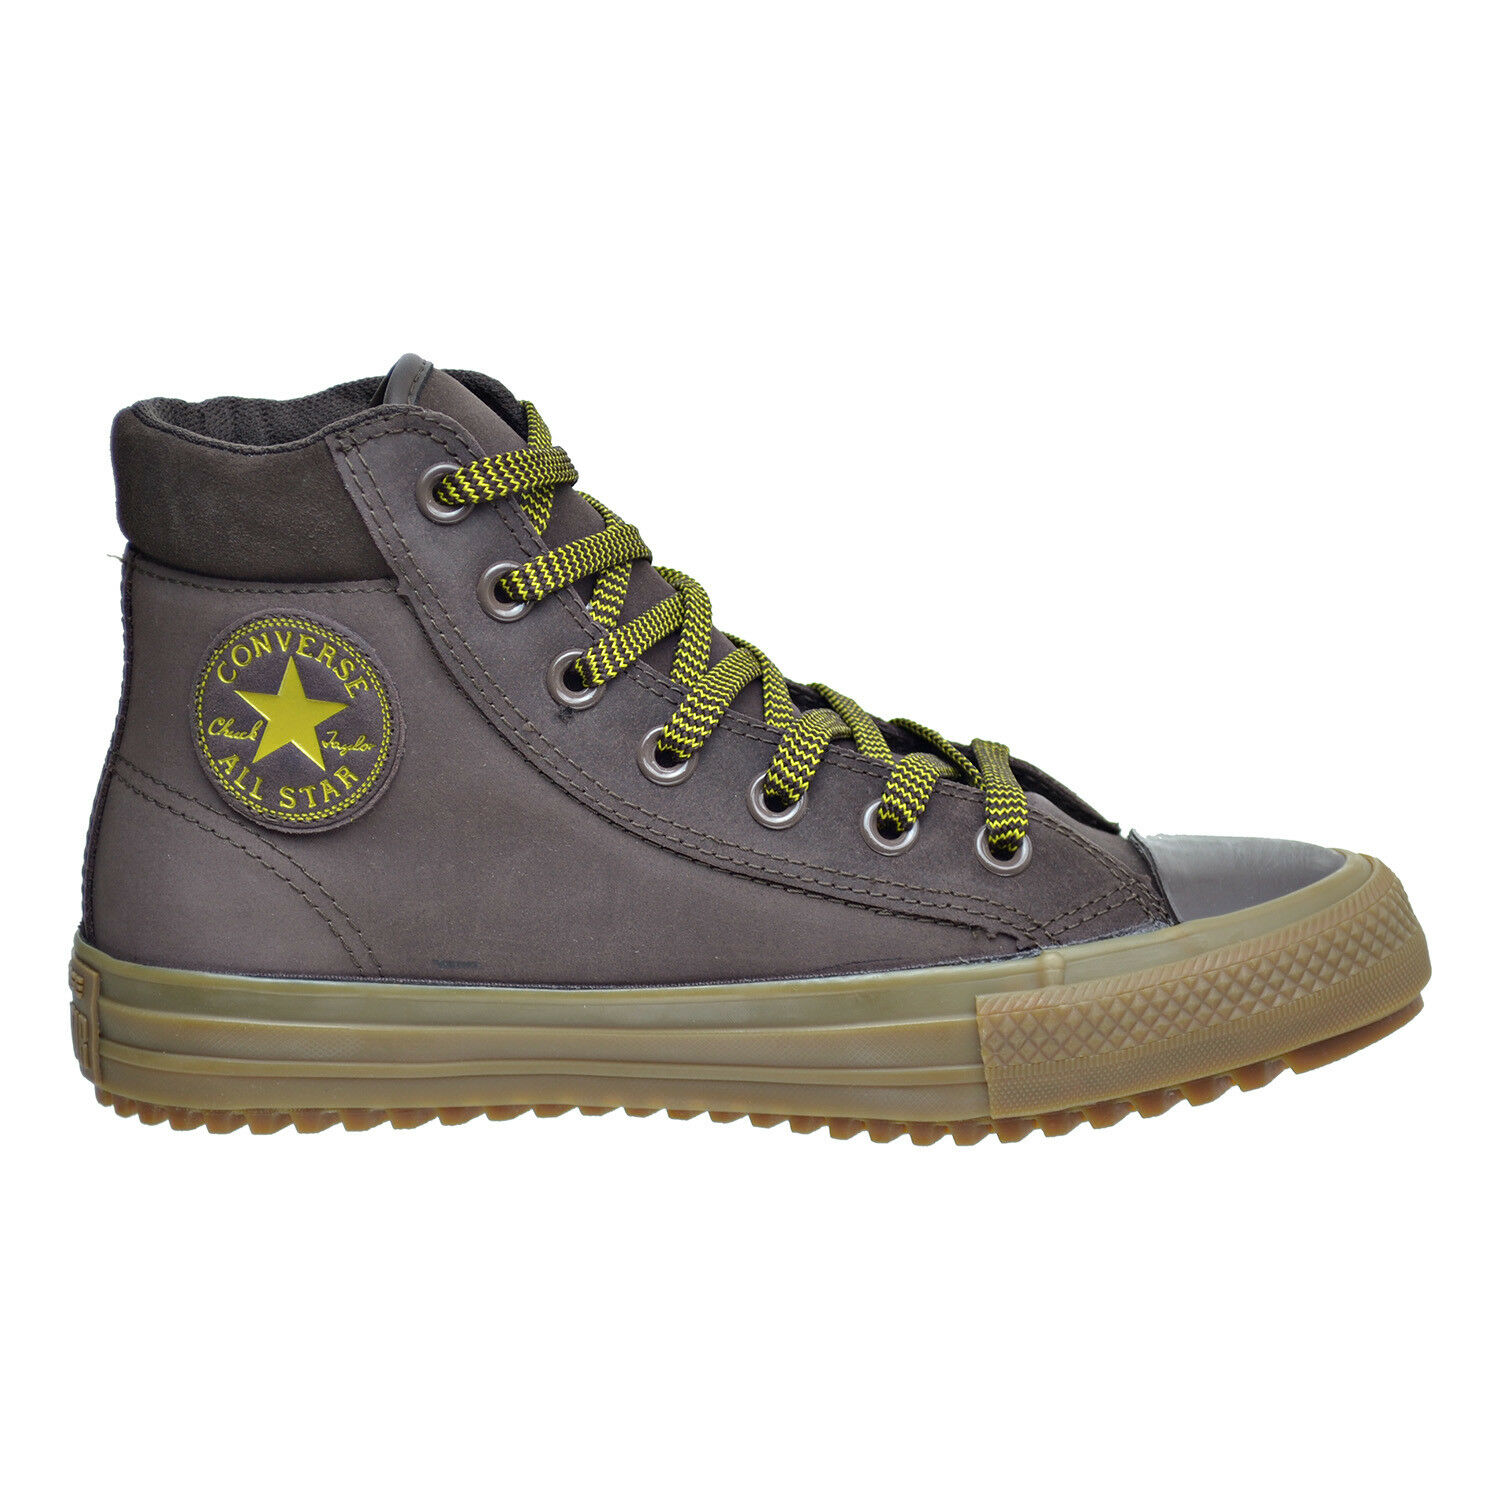 Converse Chuck Taylor All Star PC High Top Uomo stivali stivali stivali Burnt Umber Lemon 153674C 9e54d1